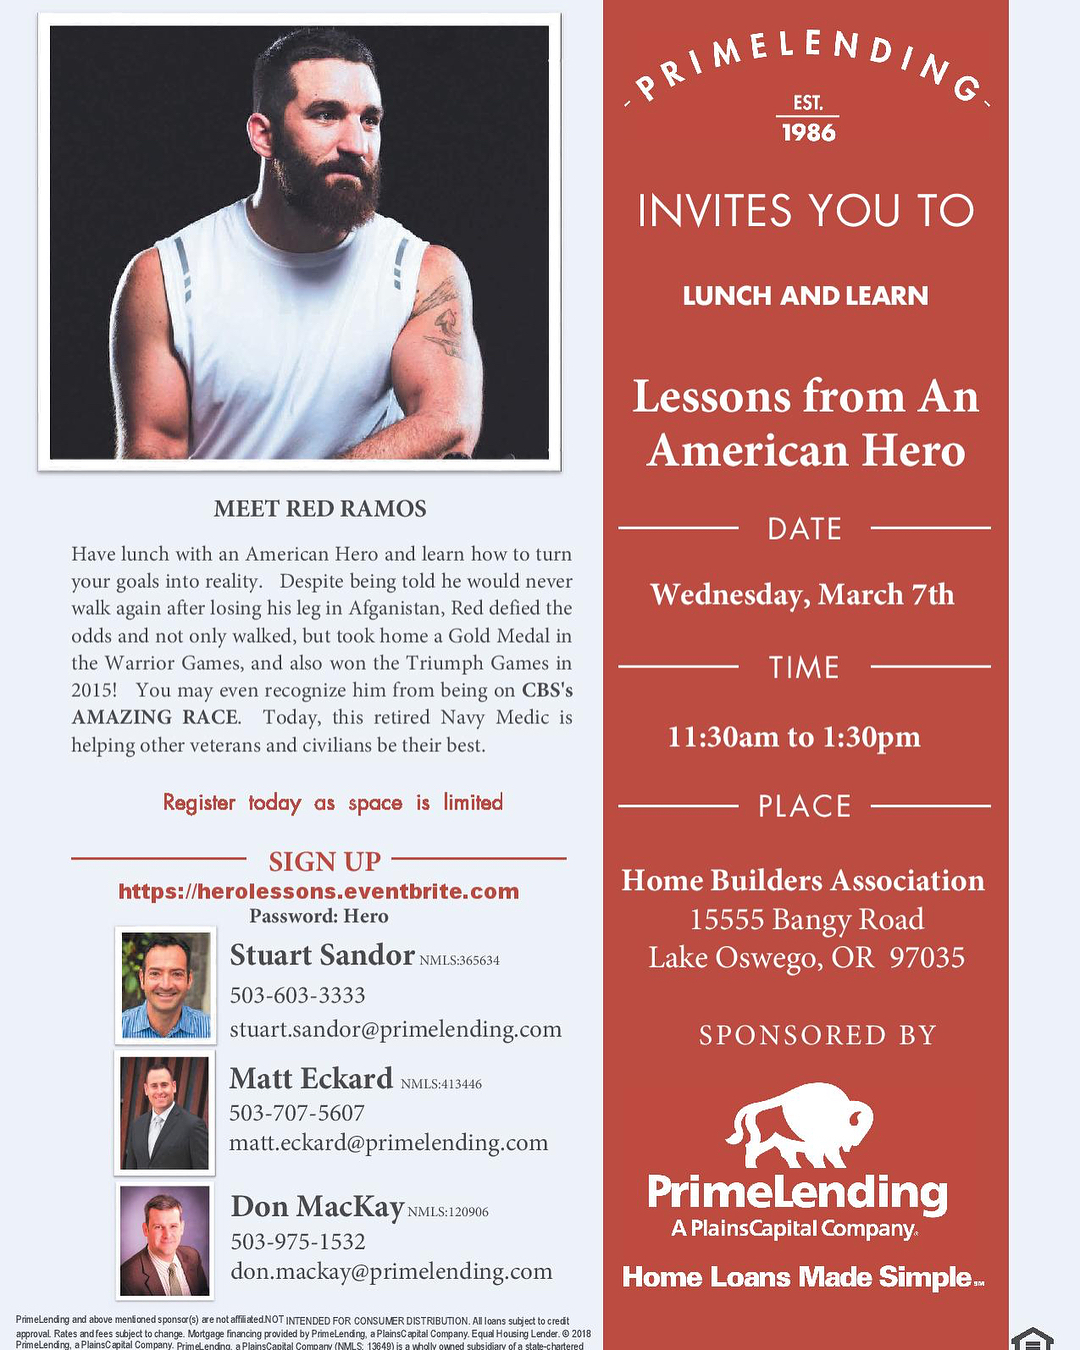 """YOU are invited to have Lunch & Learn from an American Hero. Find out how Red Ramos turned adversity into action having lost his leg while serving in Afghanistan. After winning the """"Warrior Games"""" he was invited to be on CBS TV's """"Amazing Race"""""""